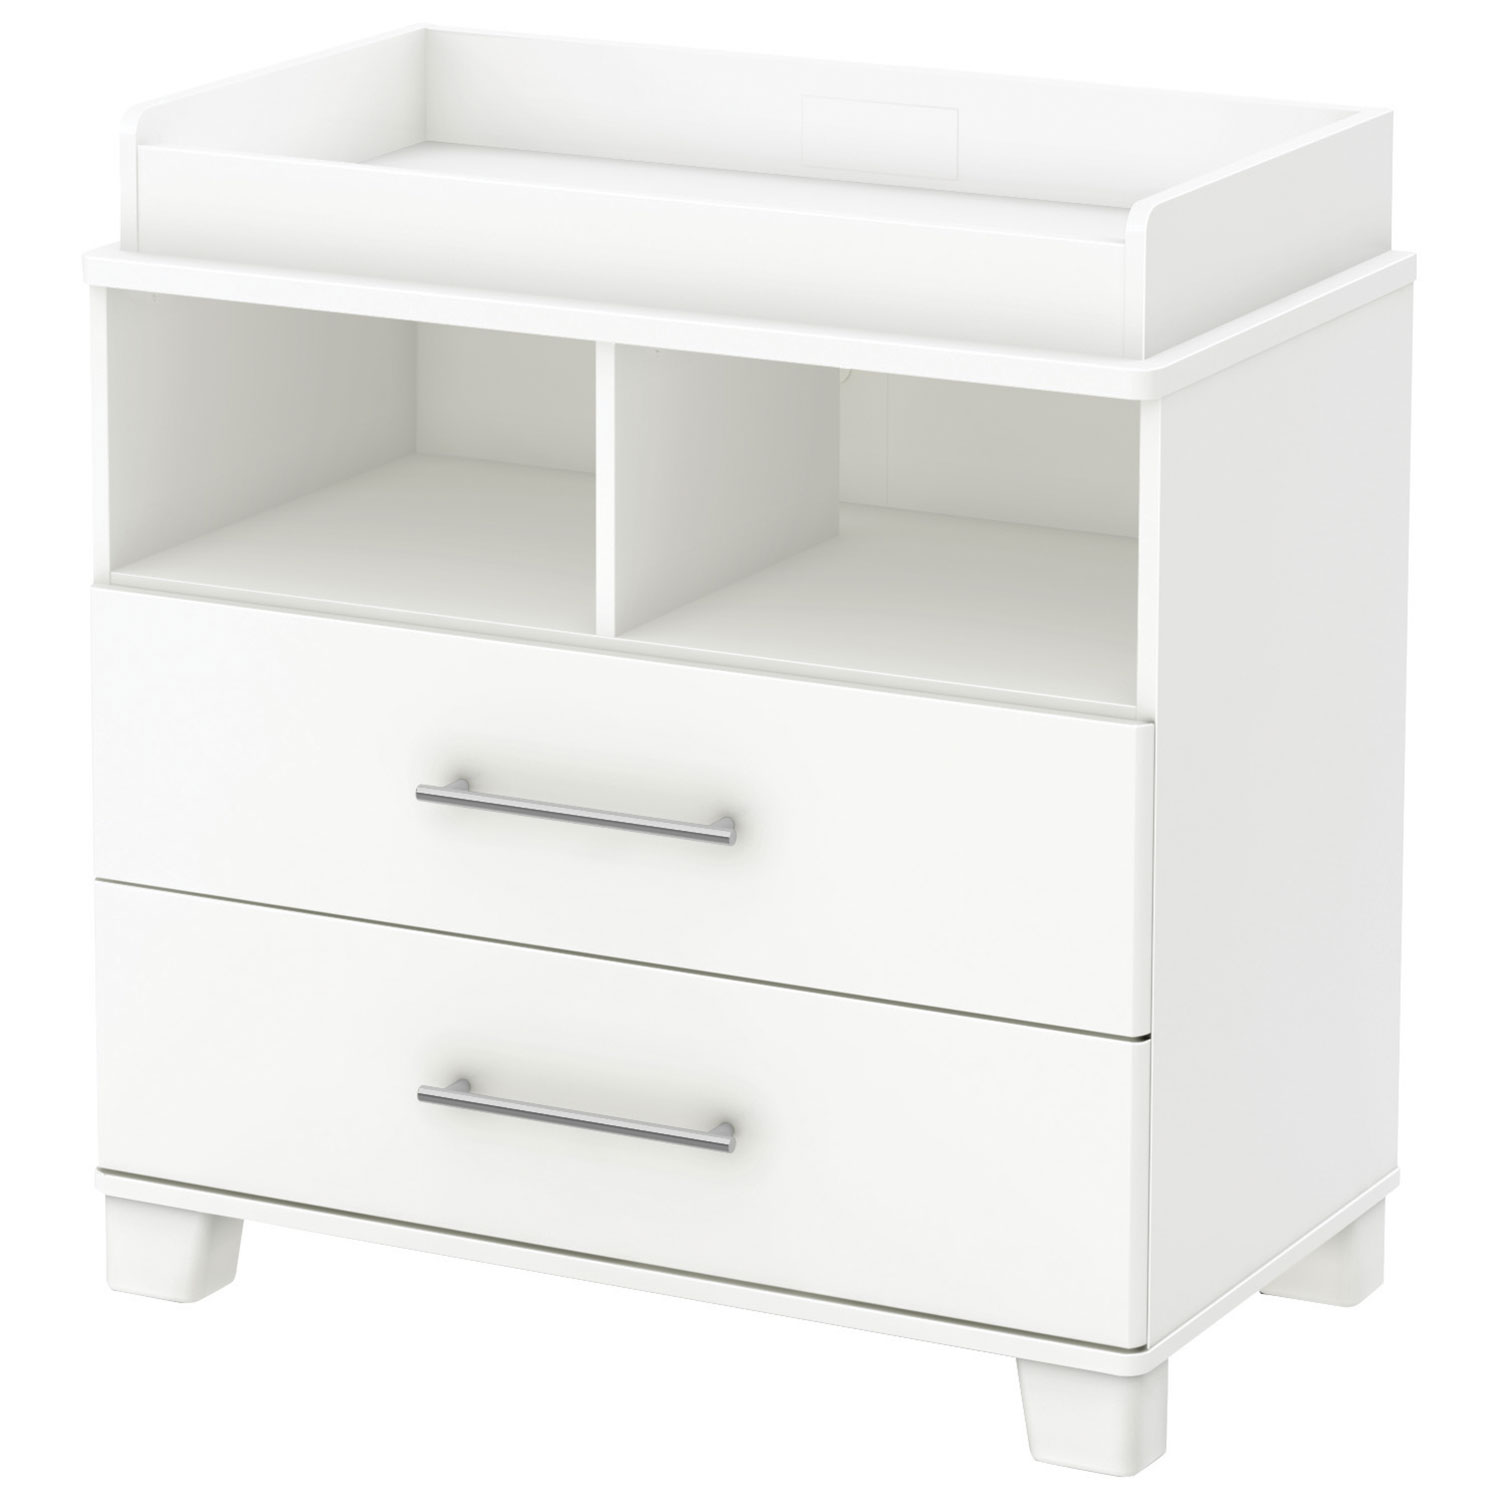 Charmant South Shore Cuddly Changing Table With Removable Changing Station   Pure  White : Change Tables   Best Buy Canada